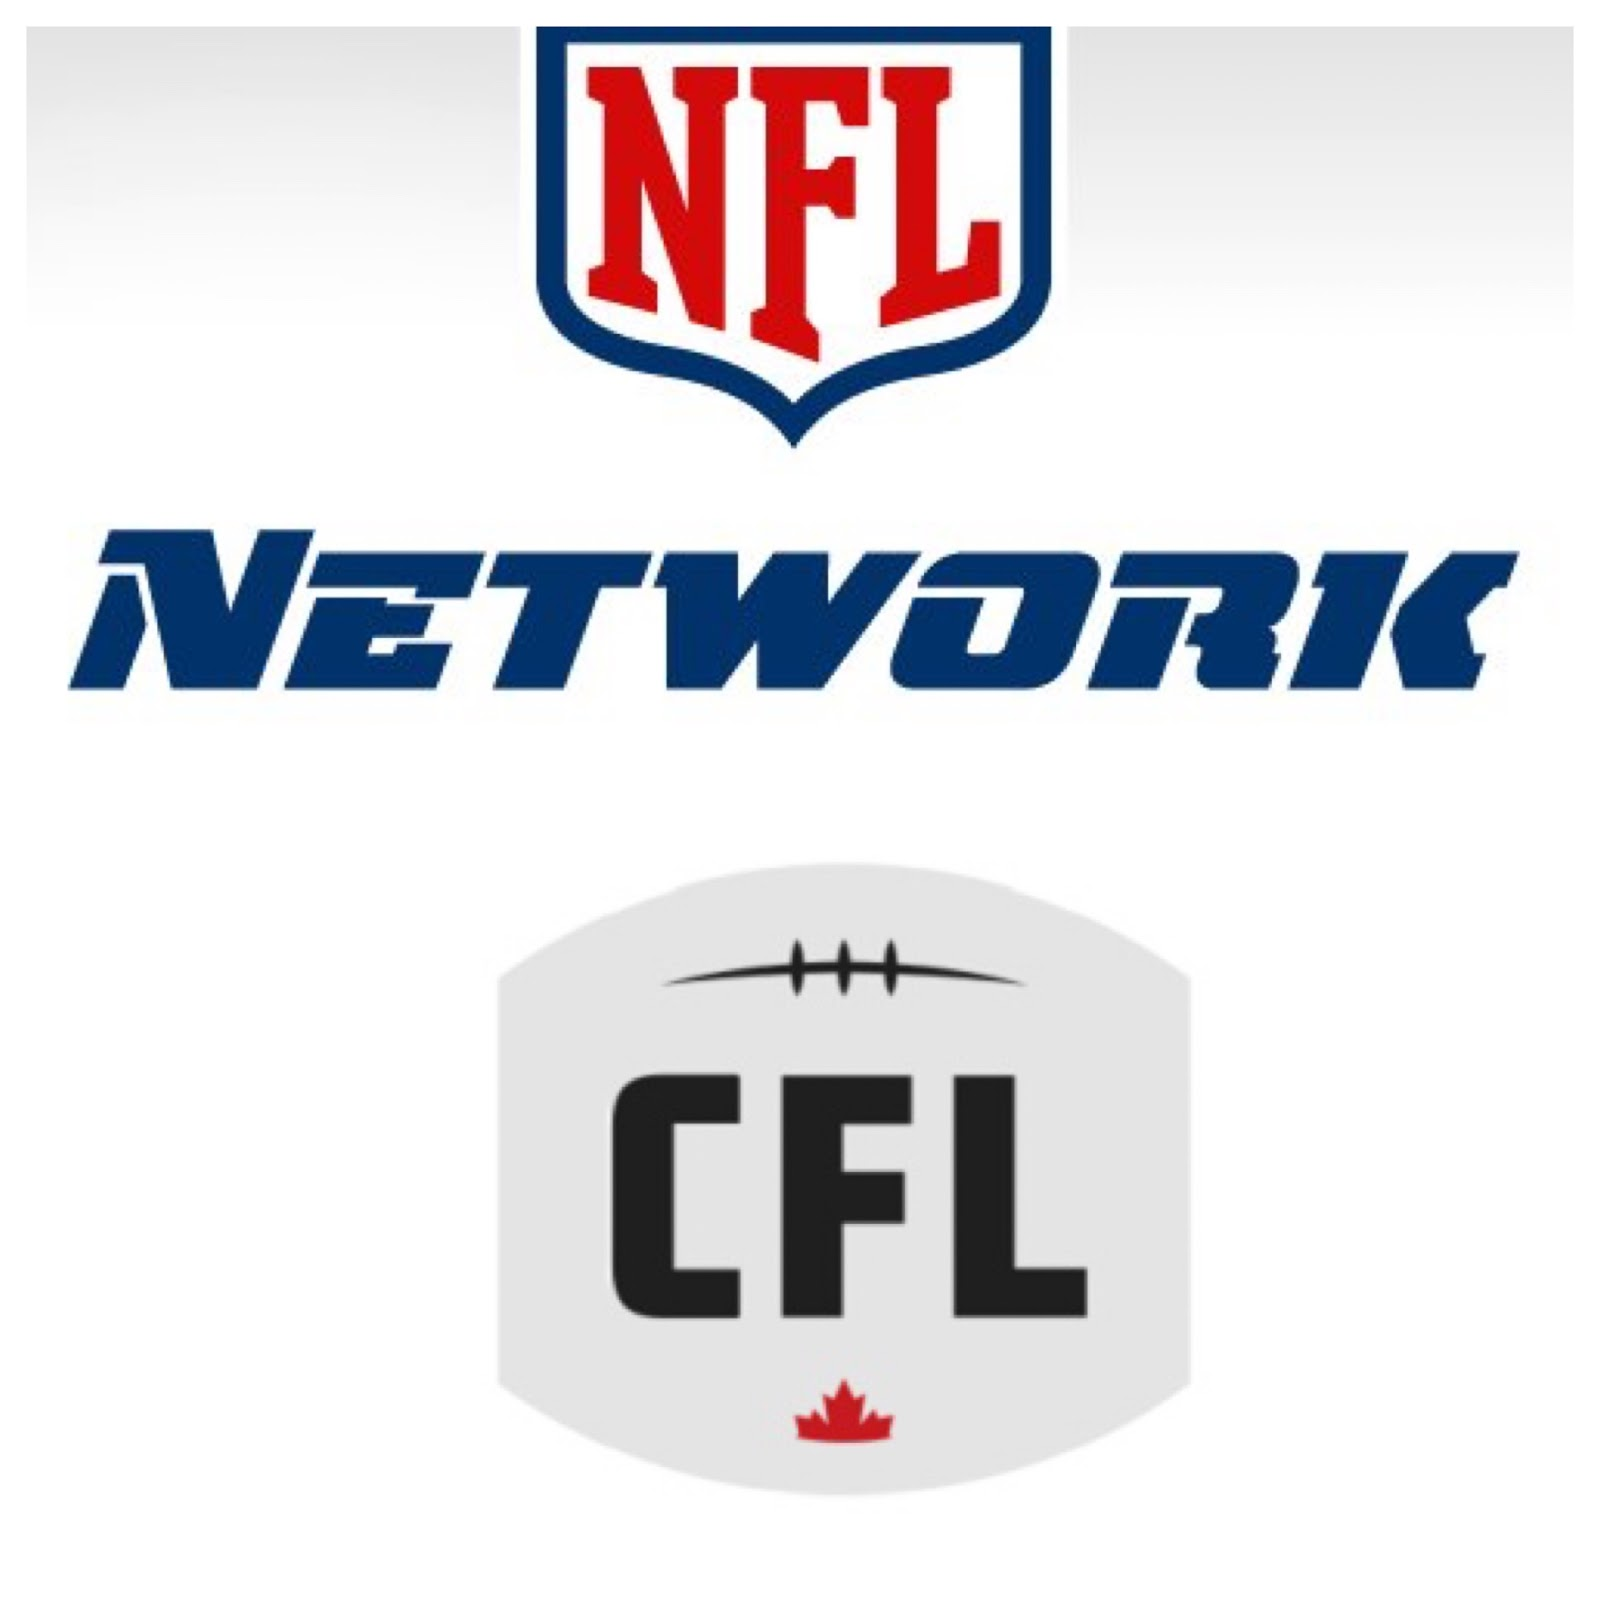 Nfl Network Begins Airing Cfl Games Tonight Dave S Football Blog